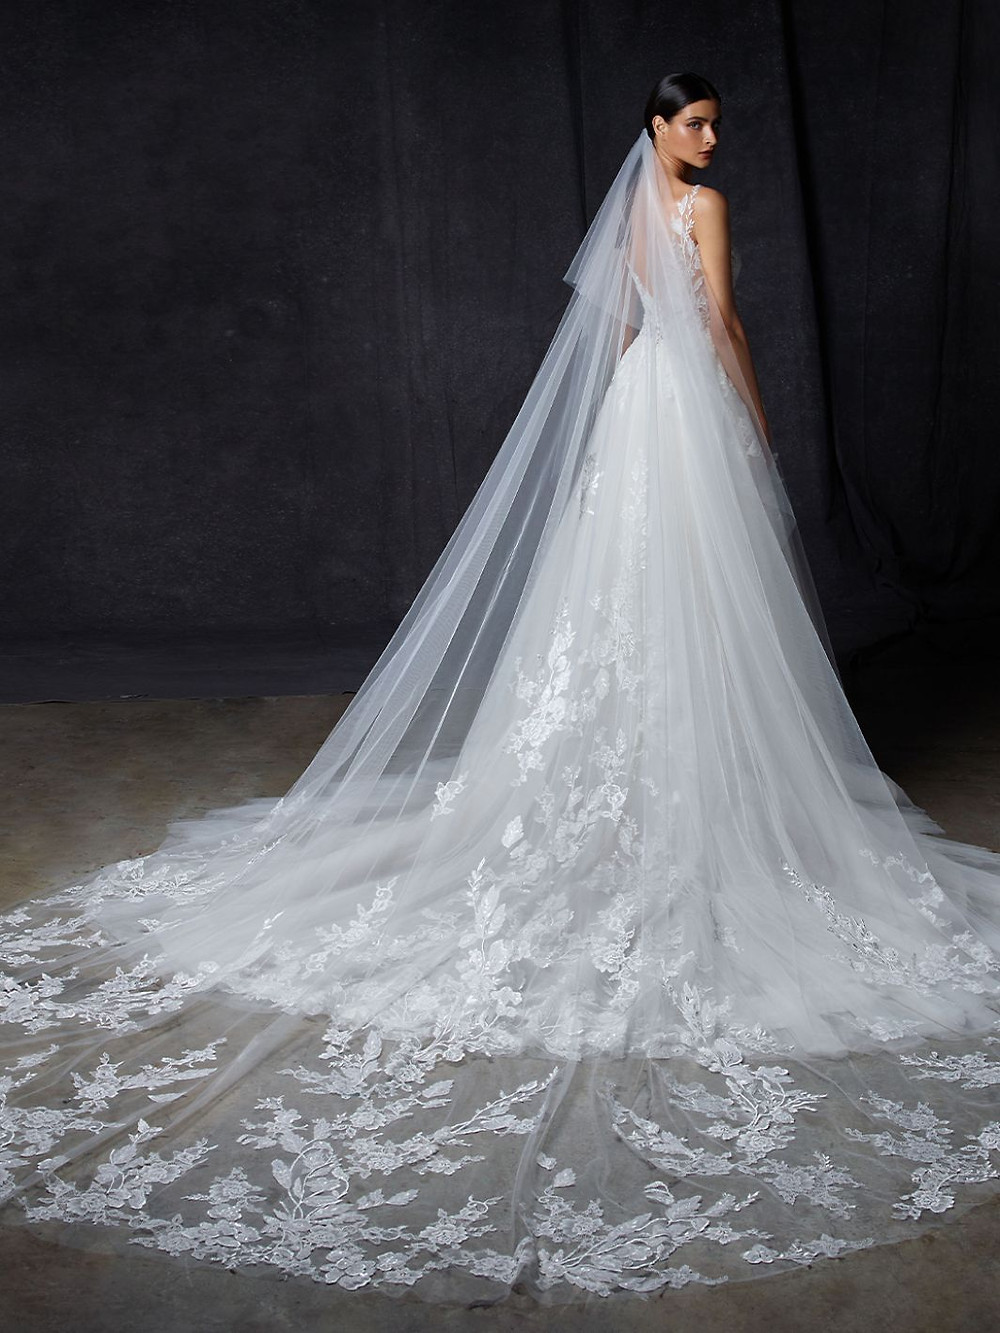 An Enzoani v neck, lace and tulle A-line wedding dress with straps and a veil